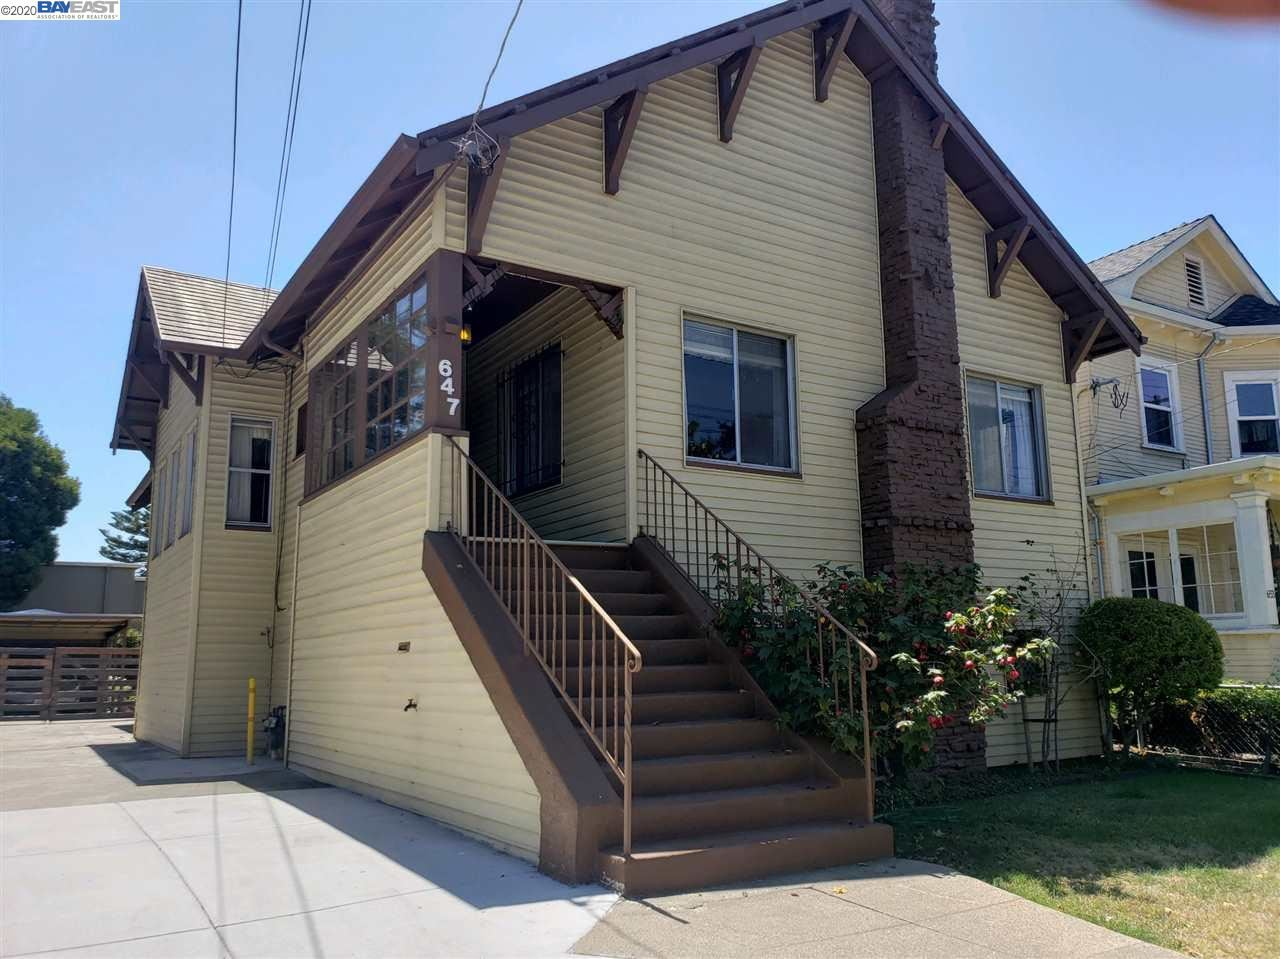 Photo for 647 54Th St, OAKLAND, CA 94609 (MLS # 40920971)